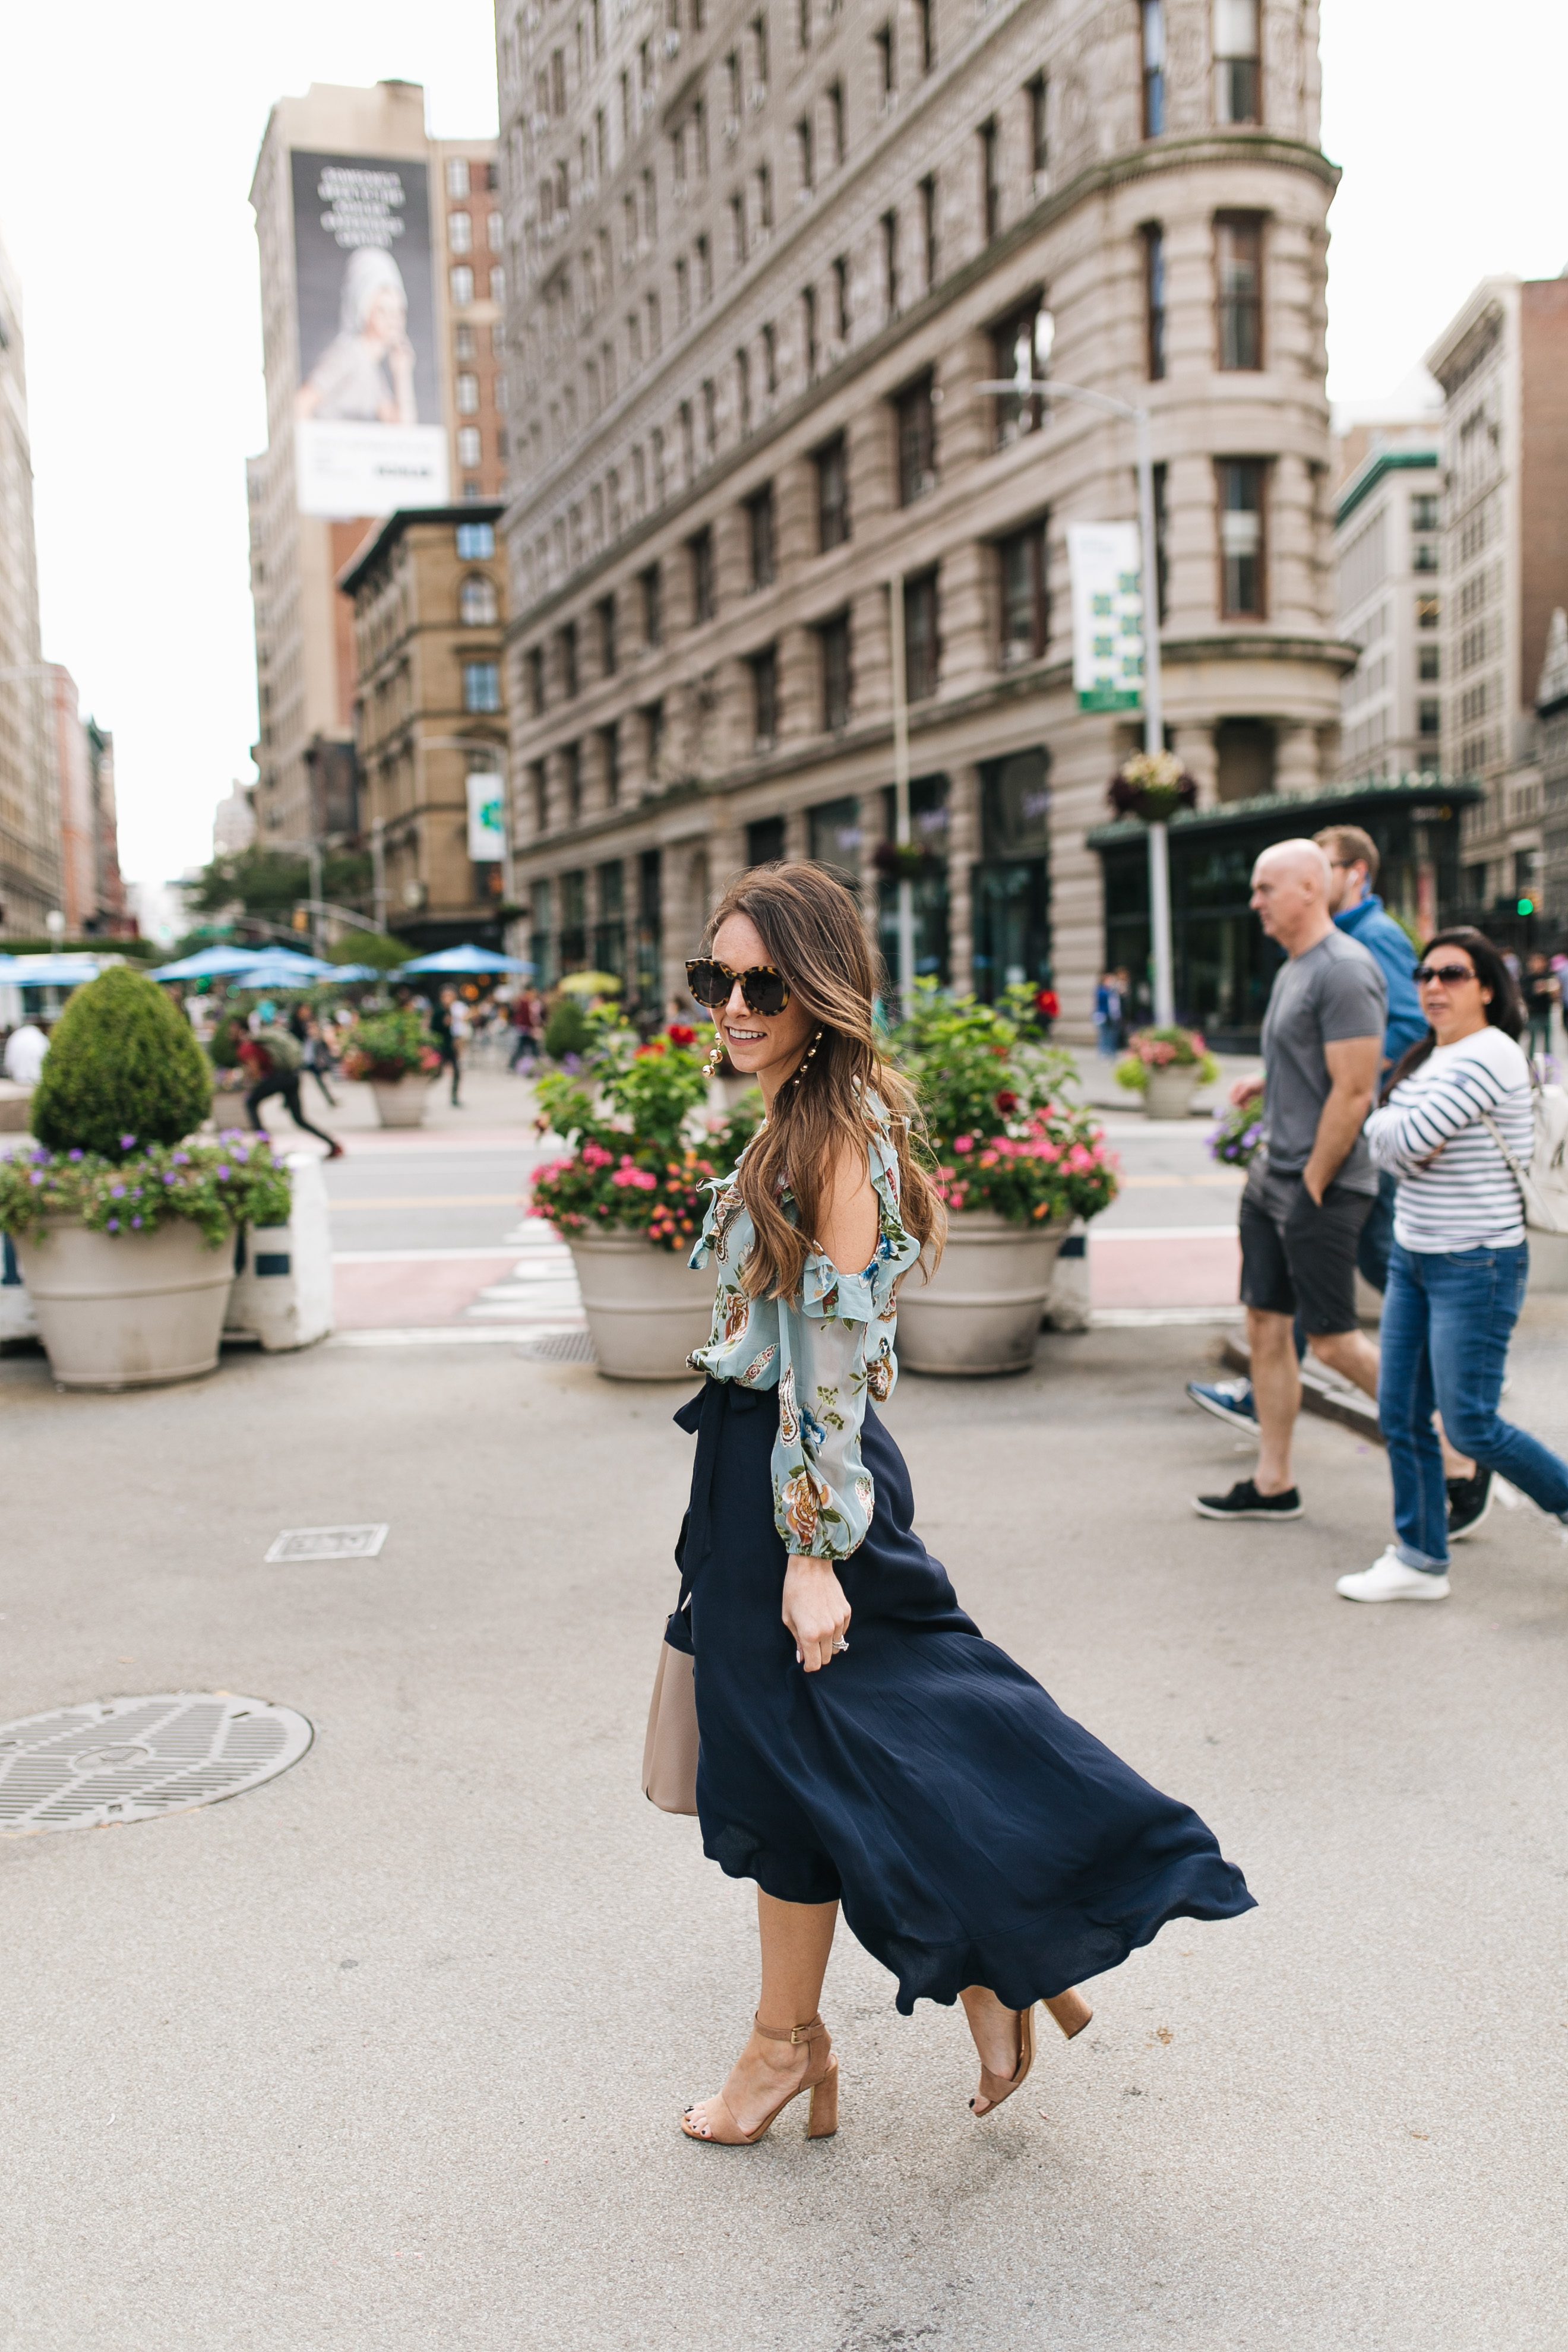 Style blogger Daryl-Ann Denner wears ruffle midi skirt and alice and olivia top at flatiron building during new york fashion week 2017